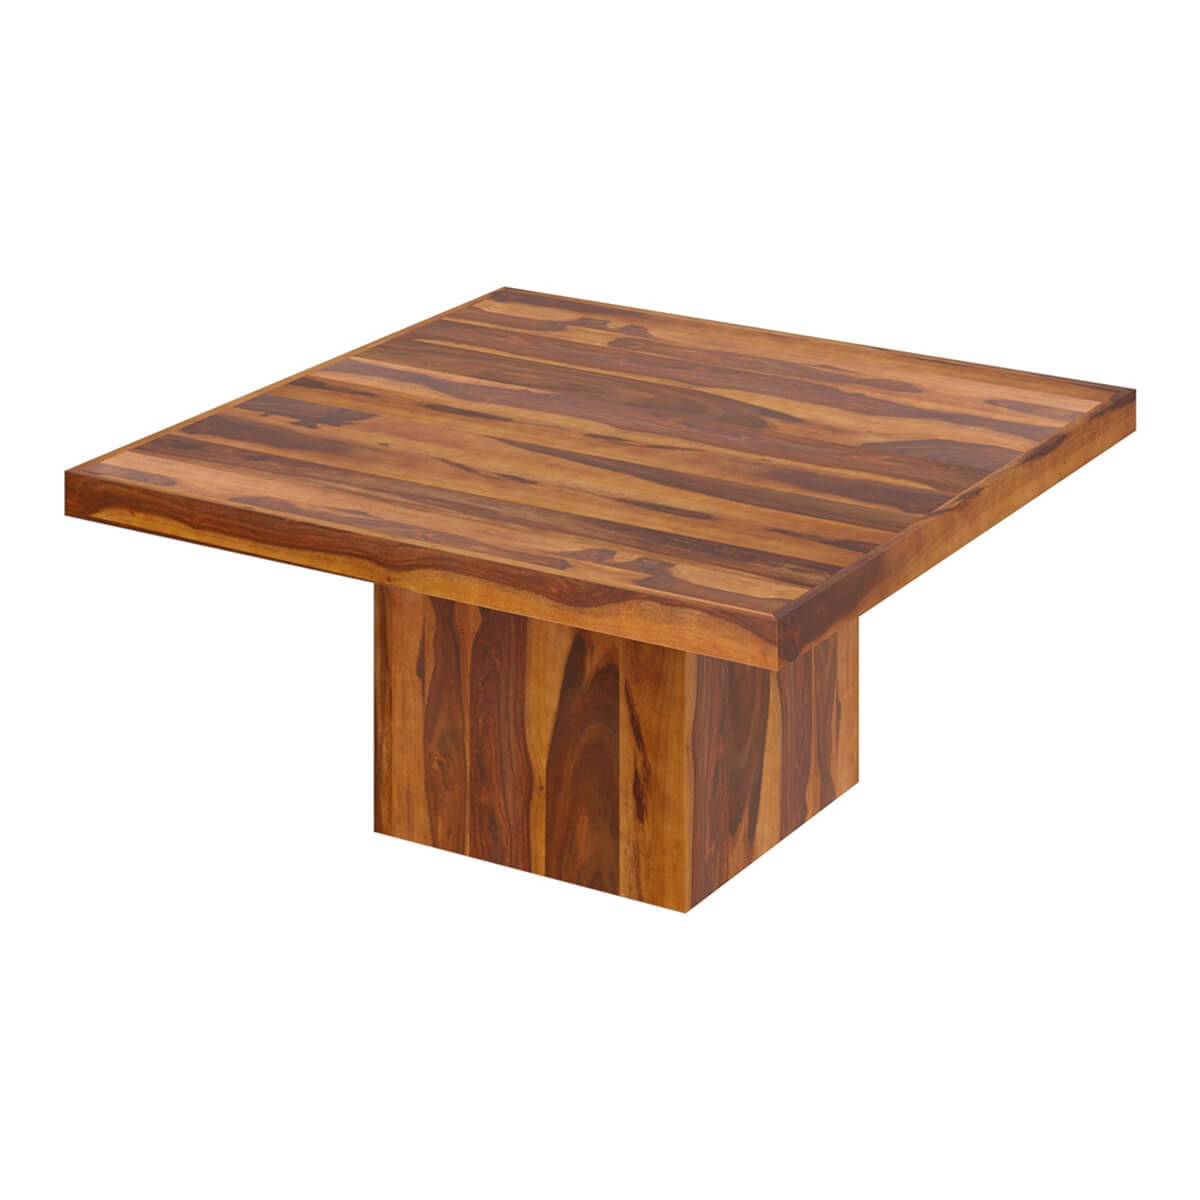 Solid wood modern rustic block pedestal square dining for Hardwood dining table